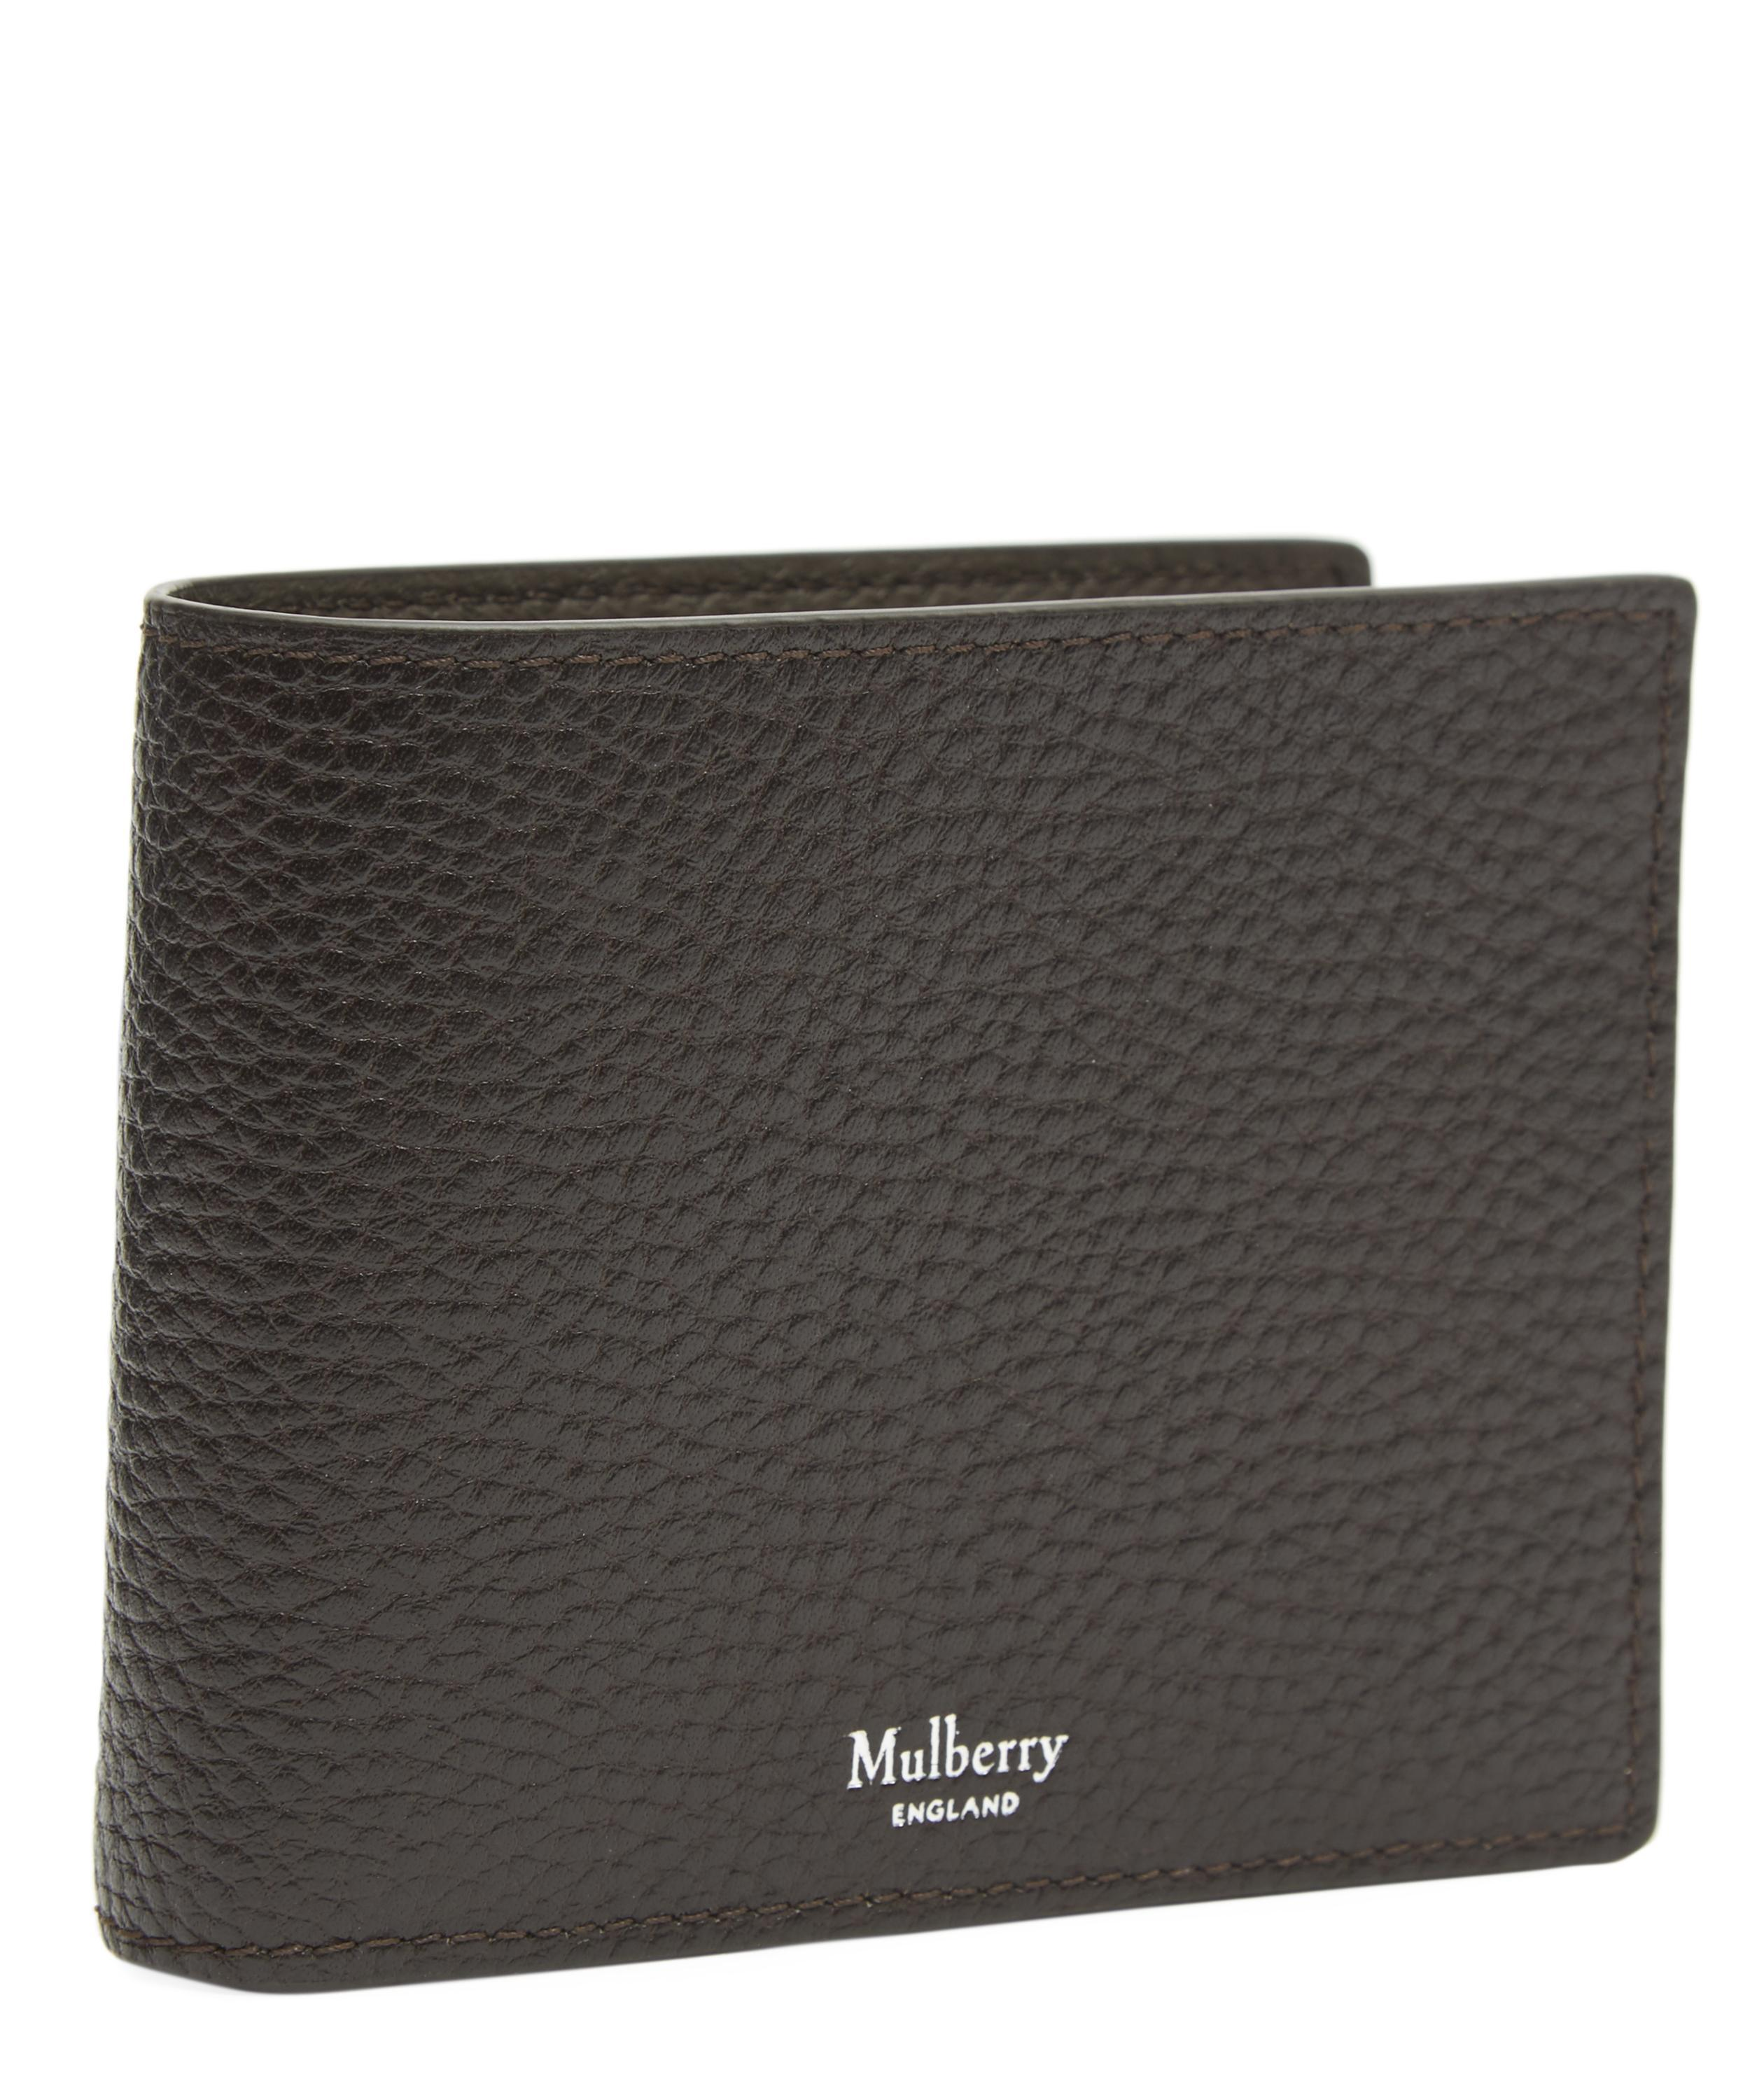 955a8a15d156 Mulberry Grain Leather Wallet in Brown for Men - Lyst